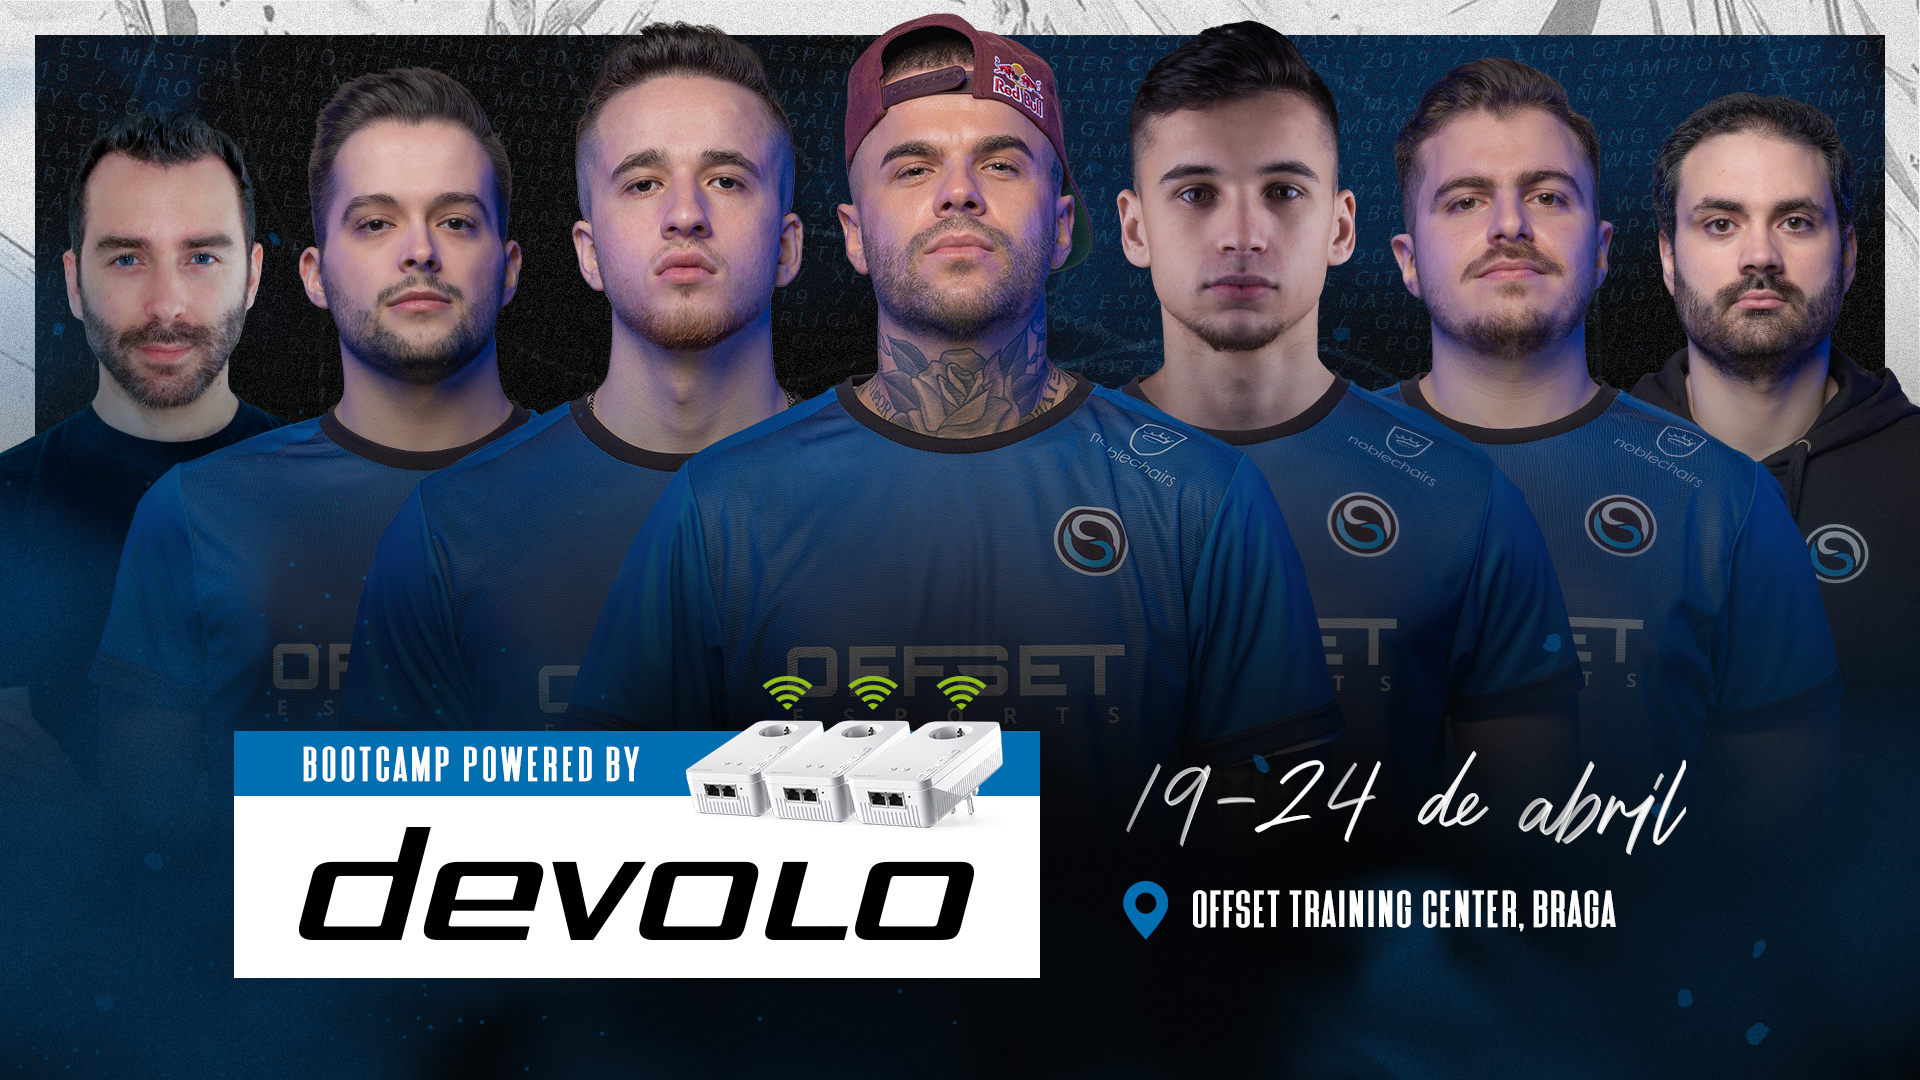 OFFSET CS:GO BOOTCAMP #1 2021 POWERED BY devolo